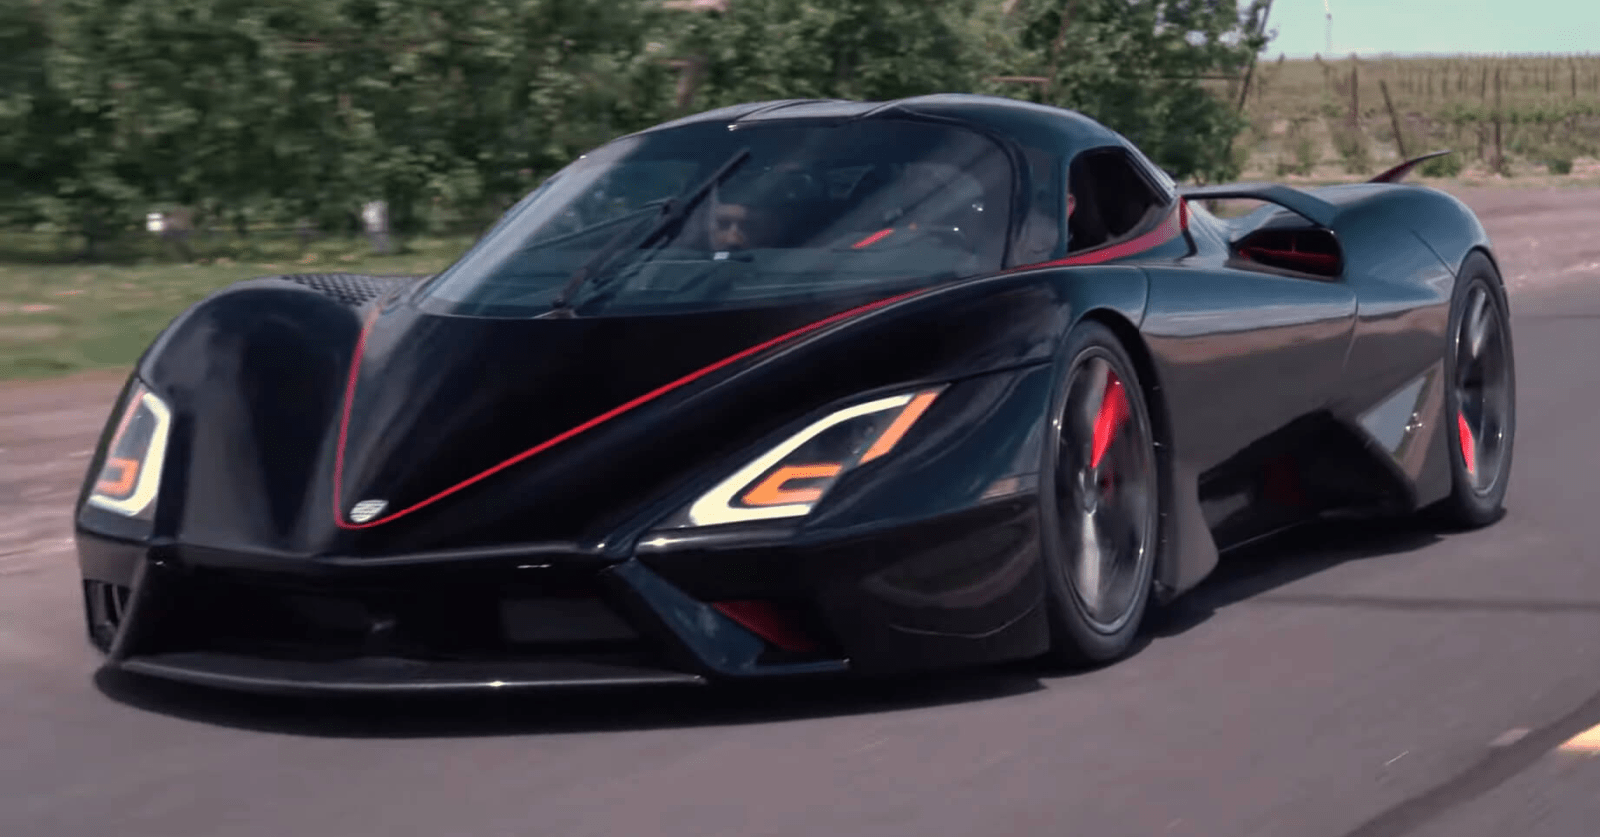 SSC Tuatara: The World Record for the Fastest Car